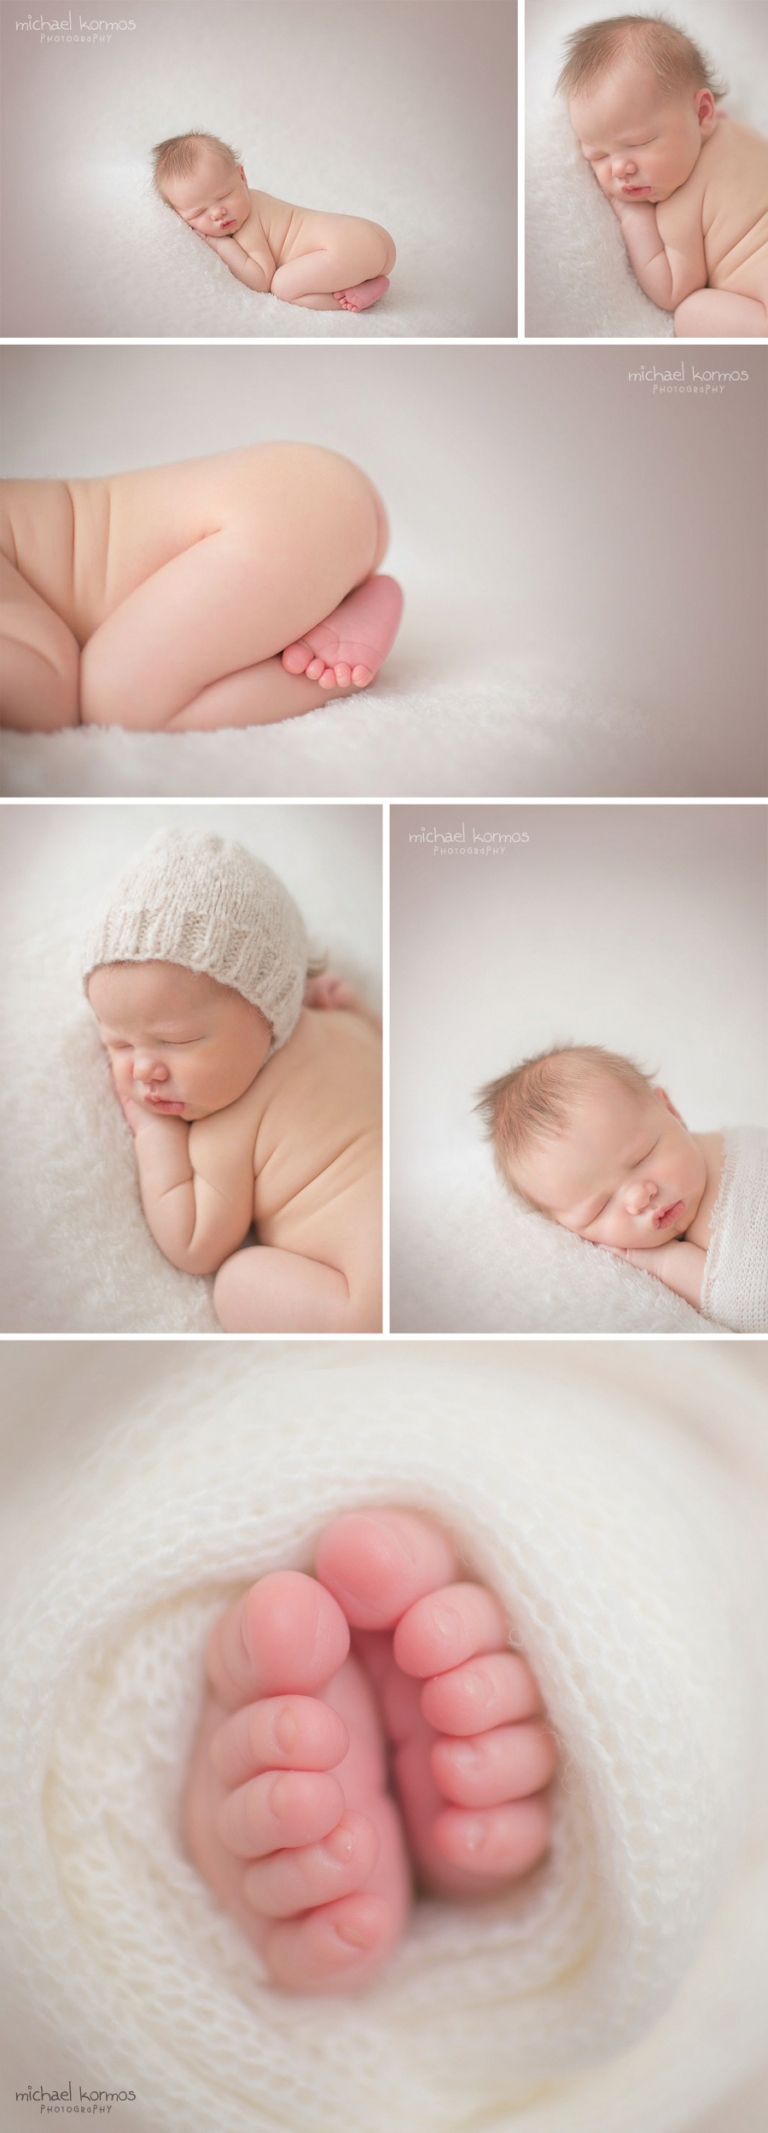 Artistic lifestyle newborn photography captured comfortably in Manhattn home